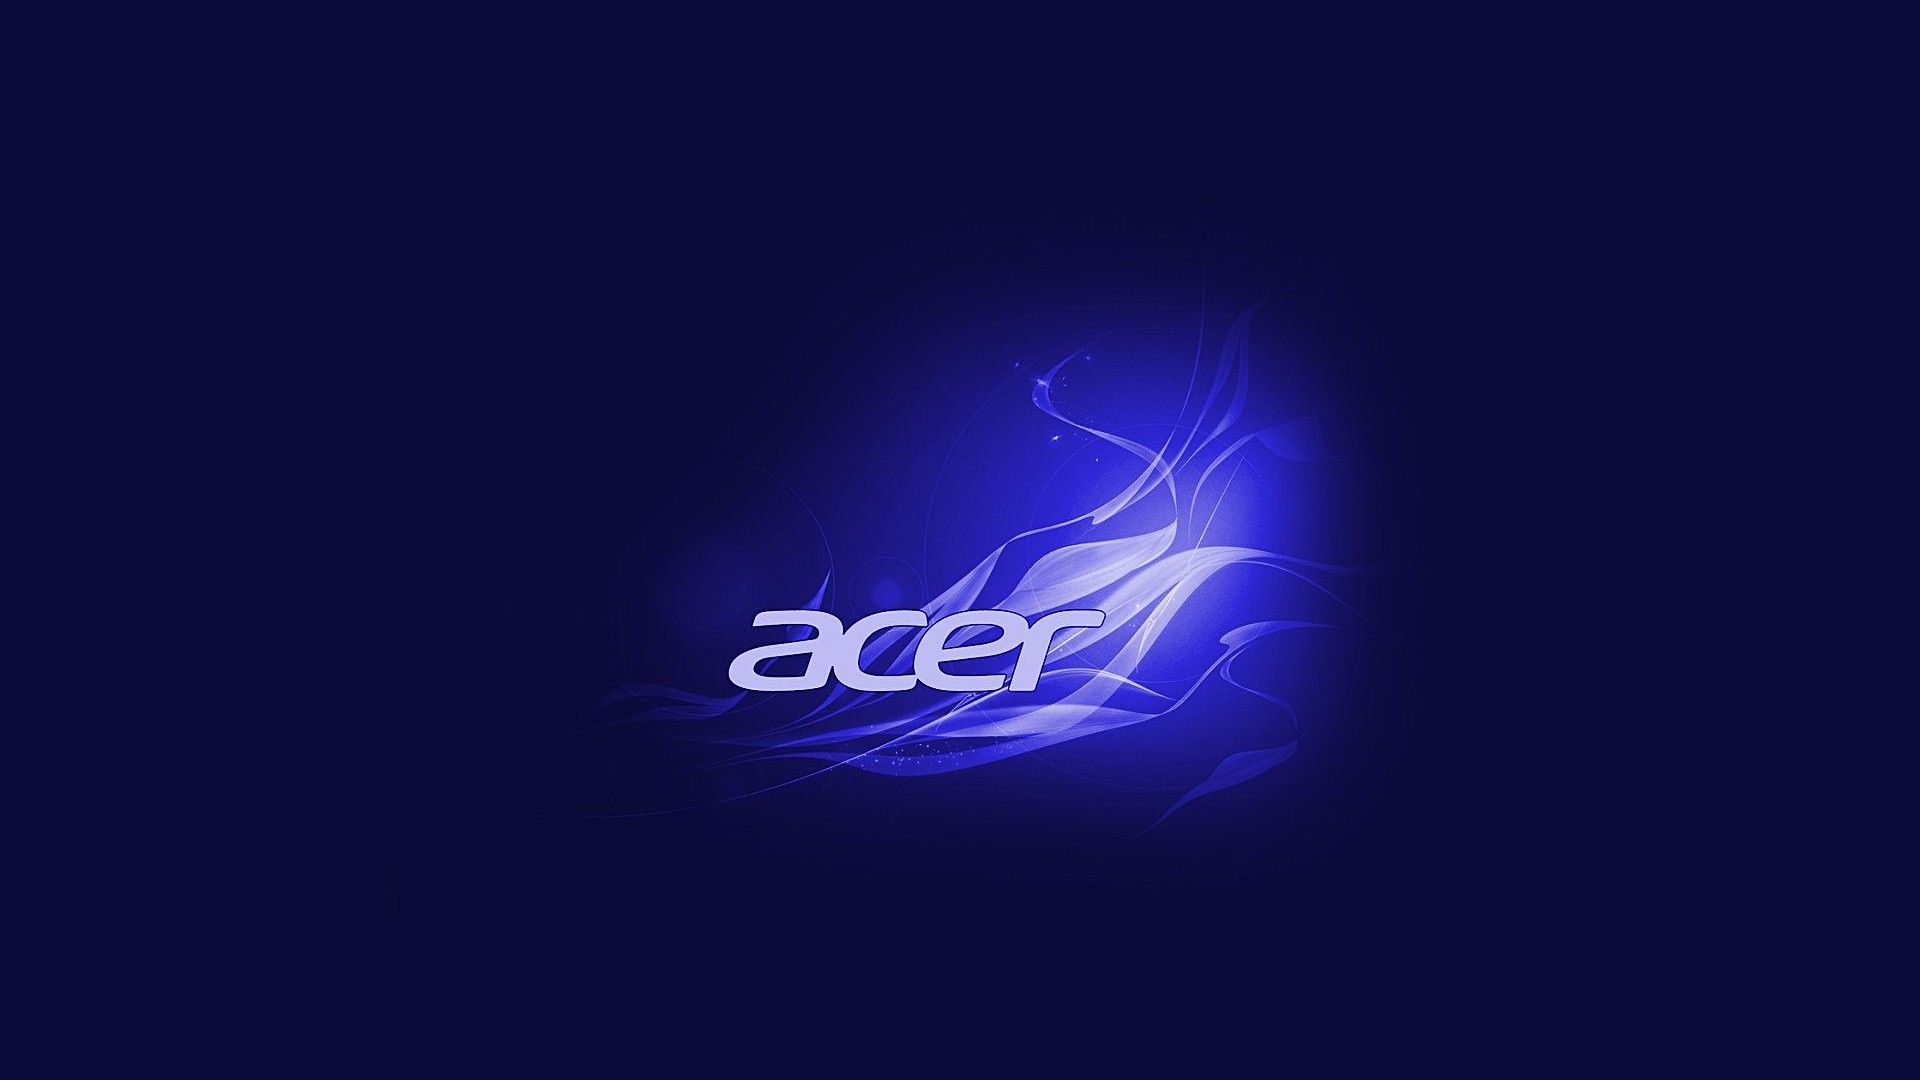 Solved Acer Aspire S Windows Stock Wallpapers Acer Community Acer Desktop Acer Desktop Wallpaper